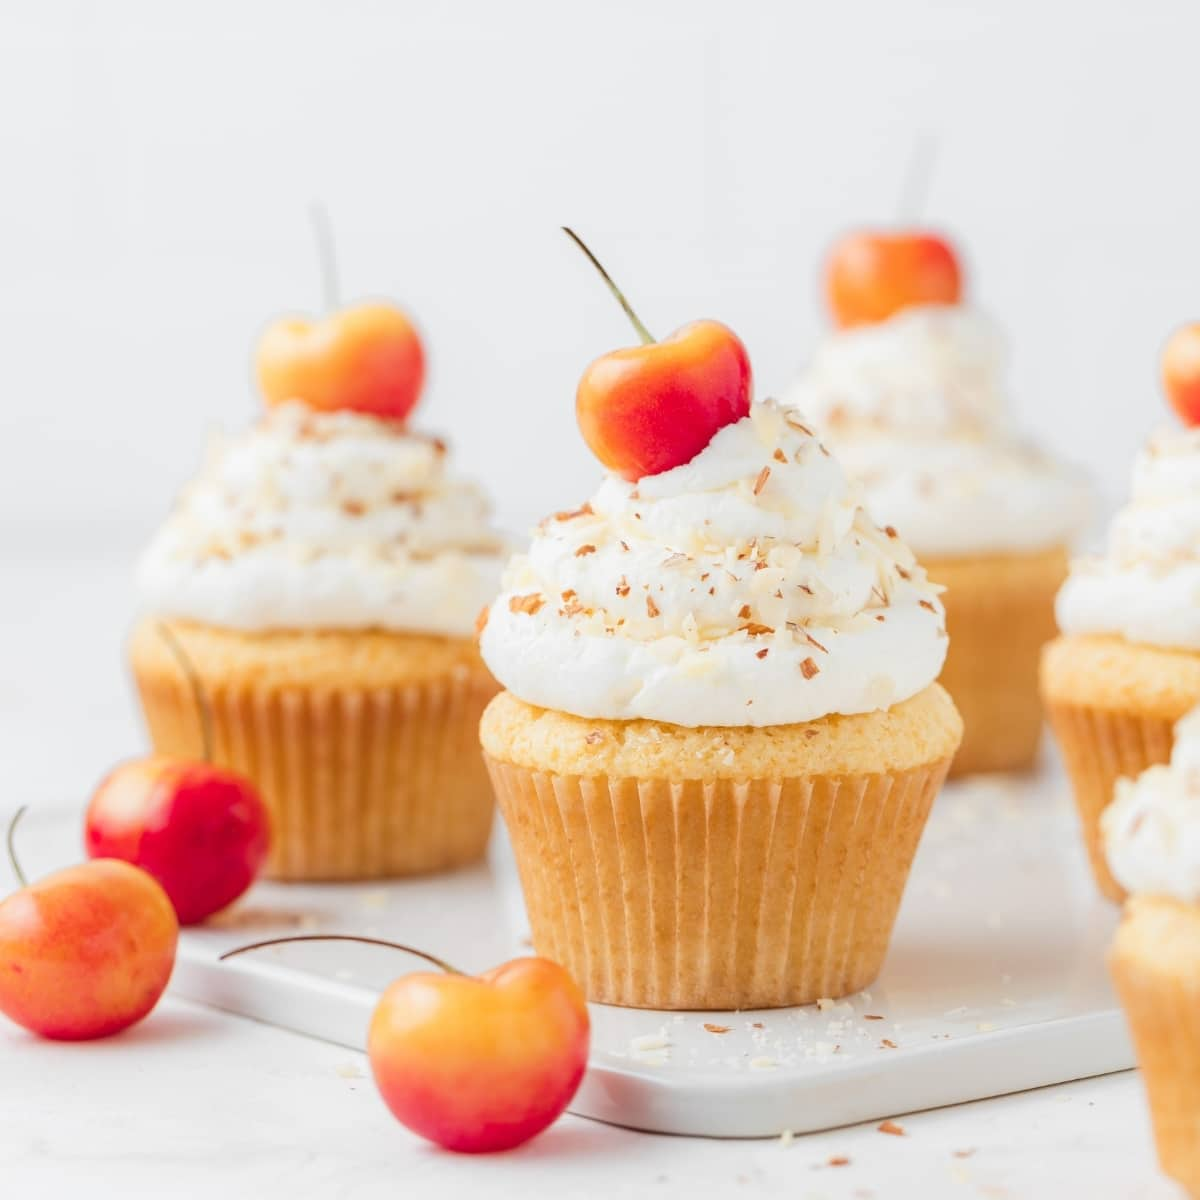 rainier cherry and almond cupcakes with cherries on top